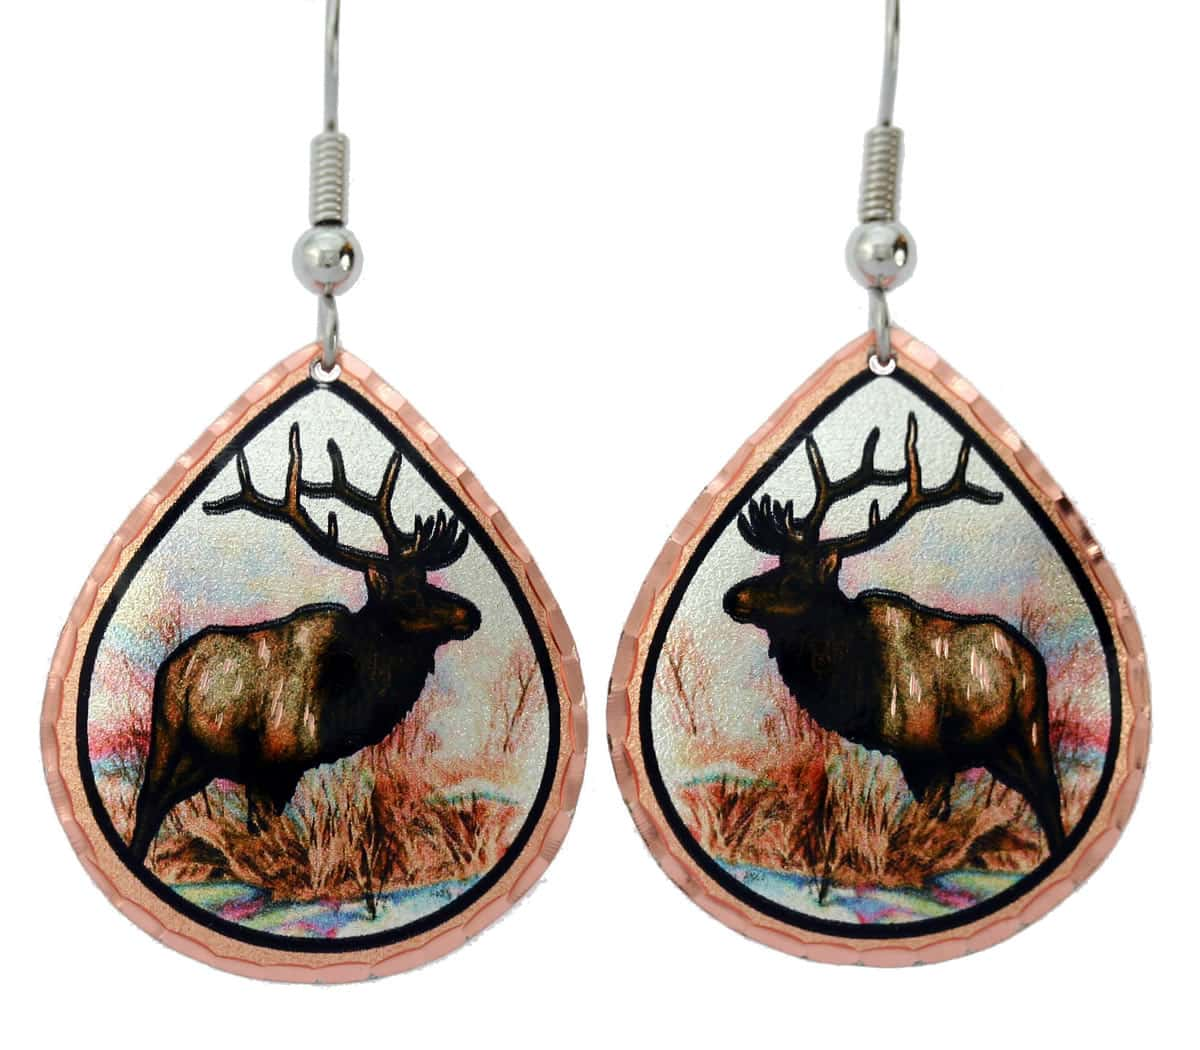 Elk earrings handmade from copper in vibrant colors designed by Lynn Bean